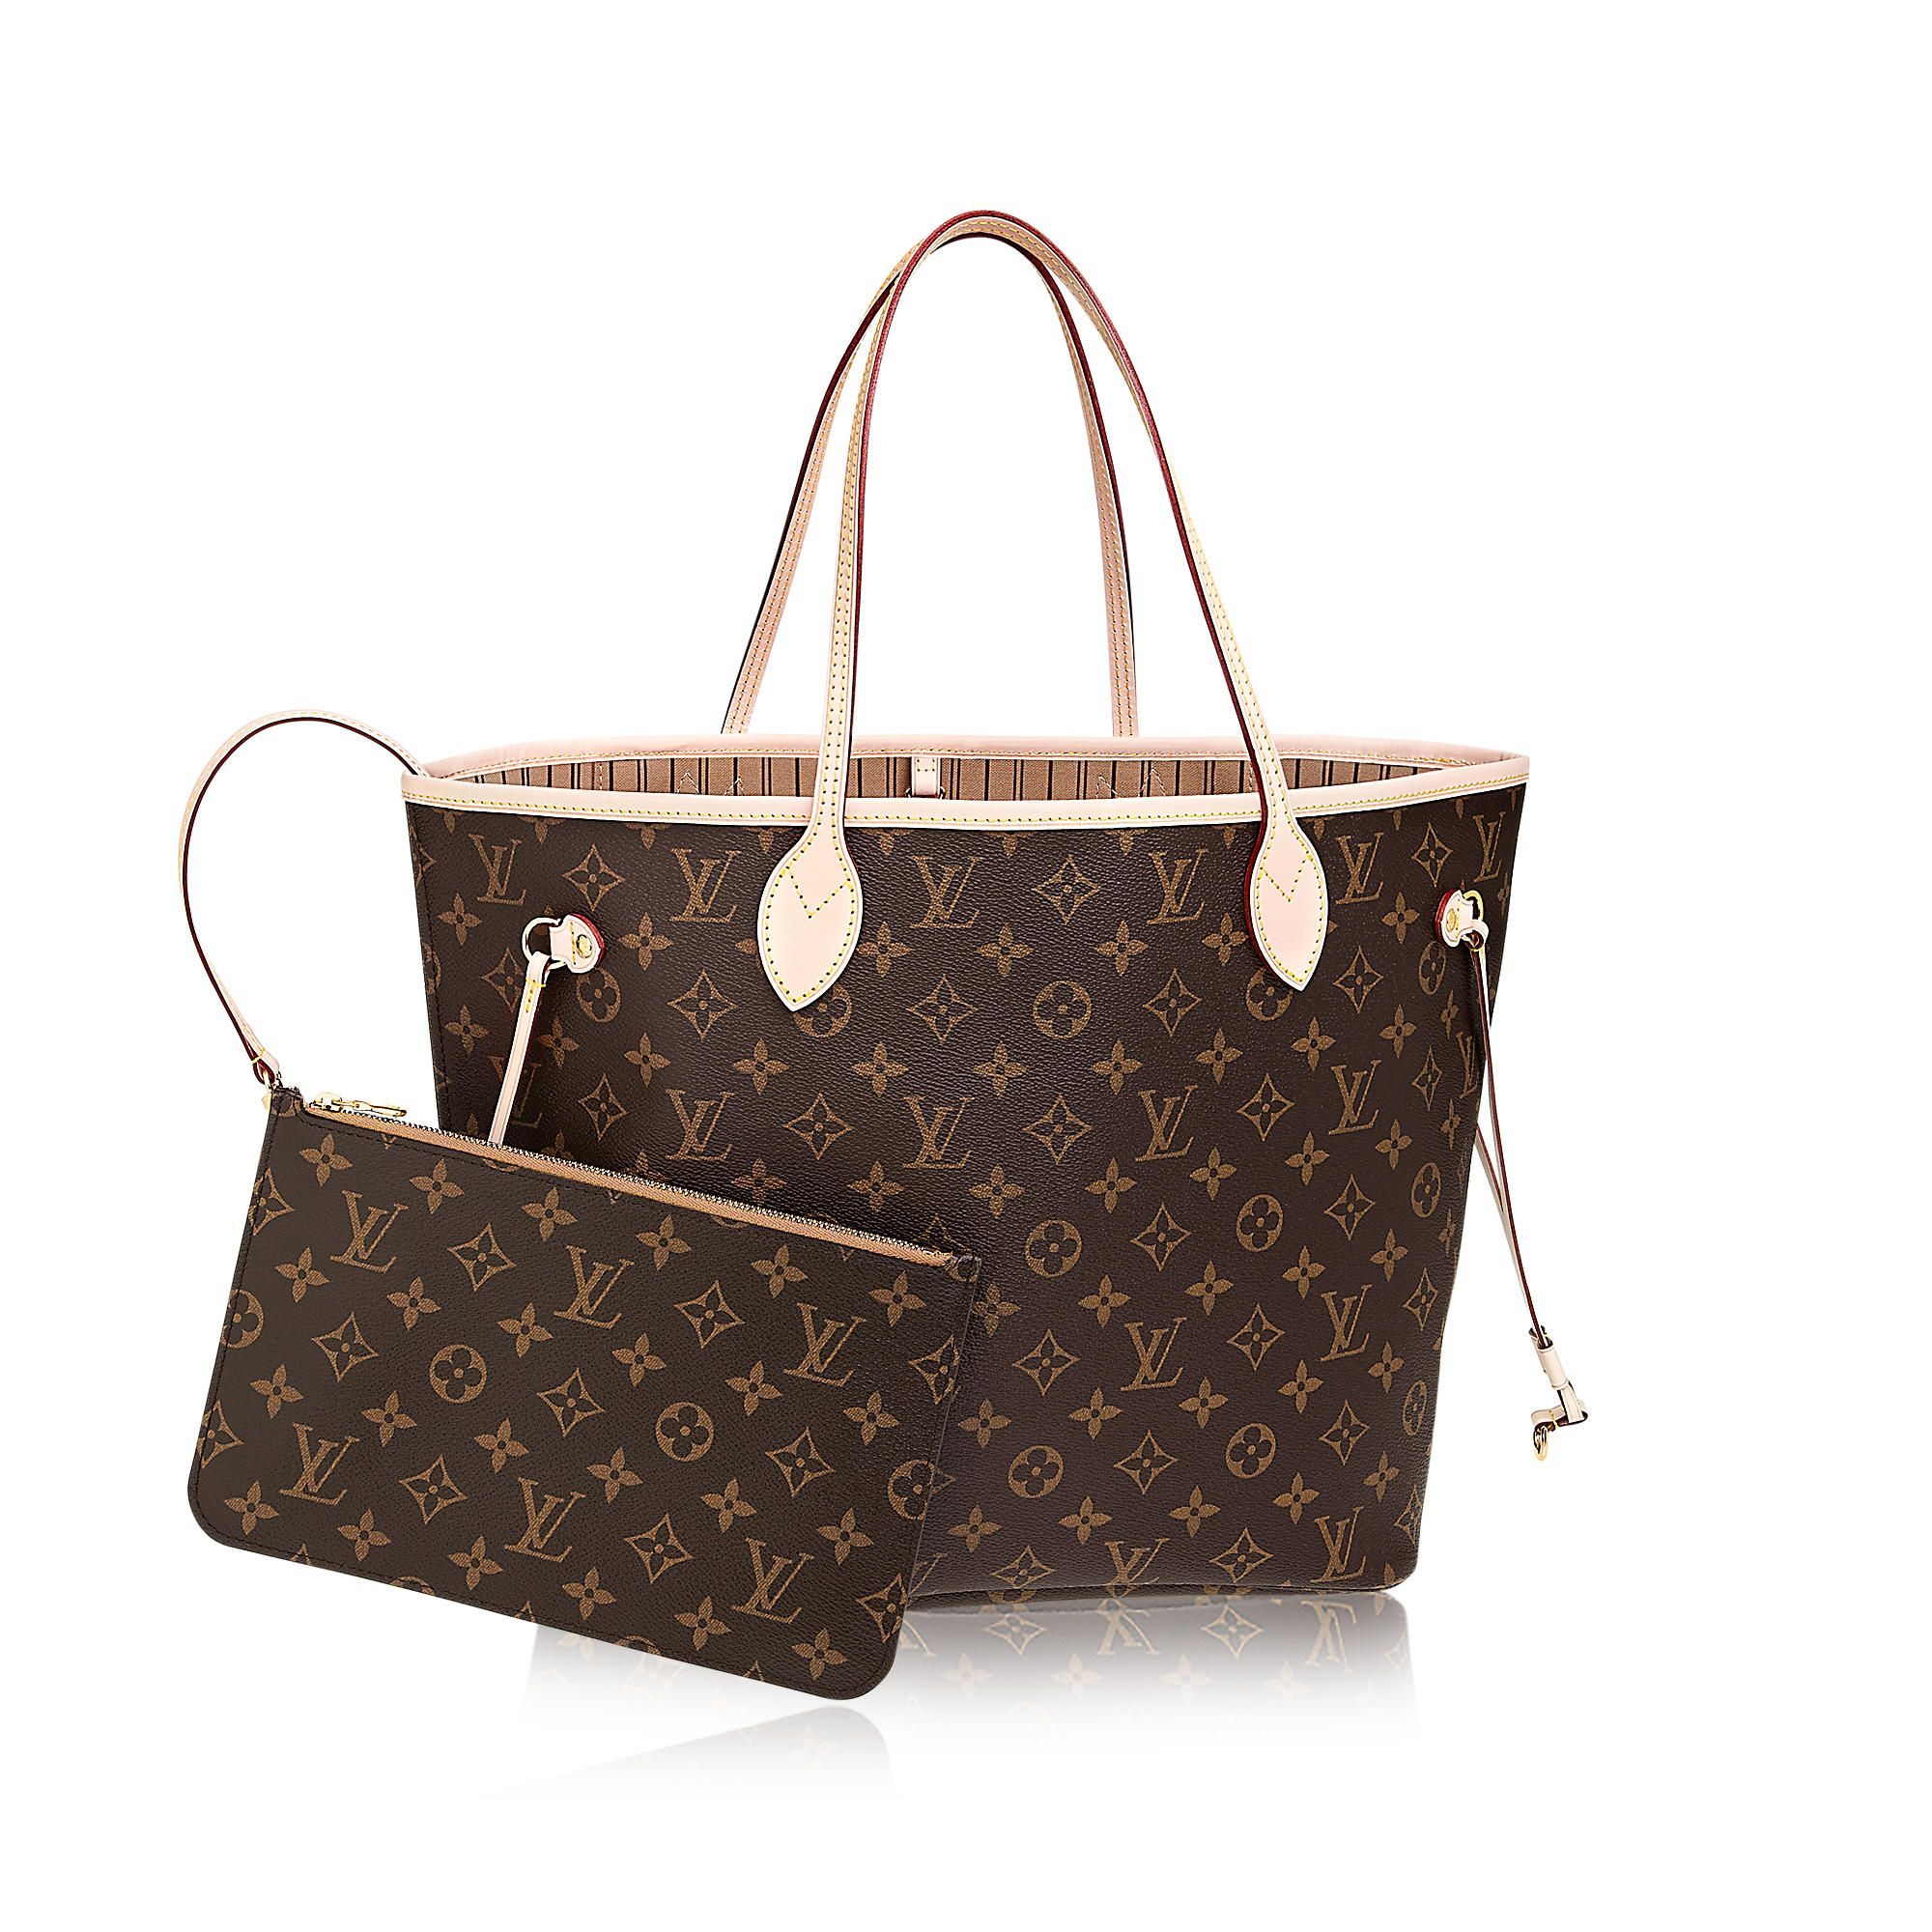 Products By Louis Vuitton Neverfull Mm Louis Vuitton Monogram Handbags Monogram Handbag Neverfull Mm Monogram